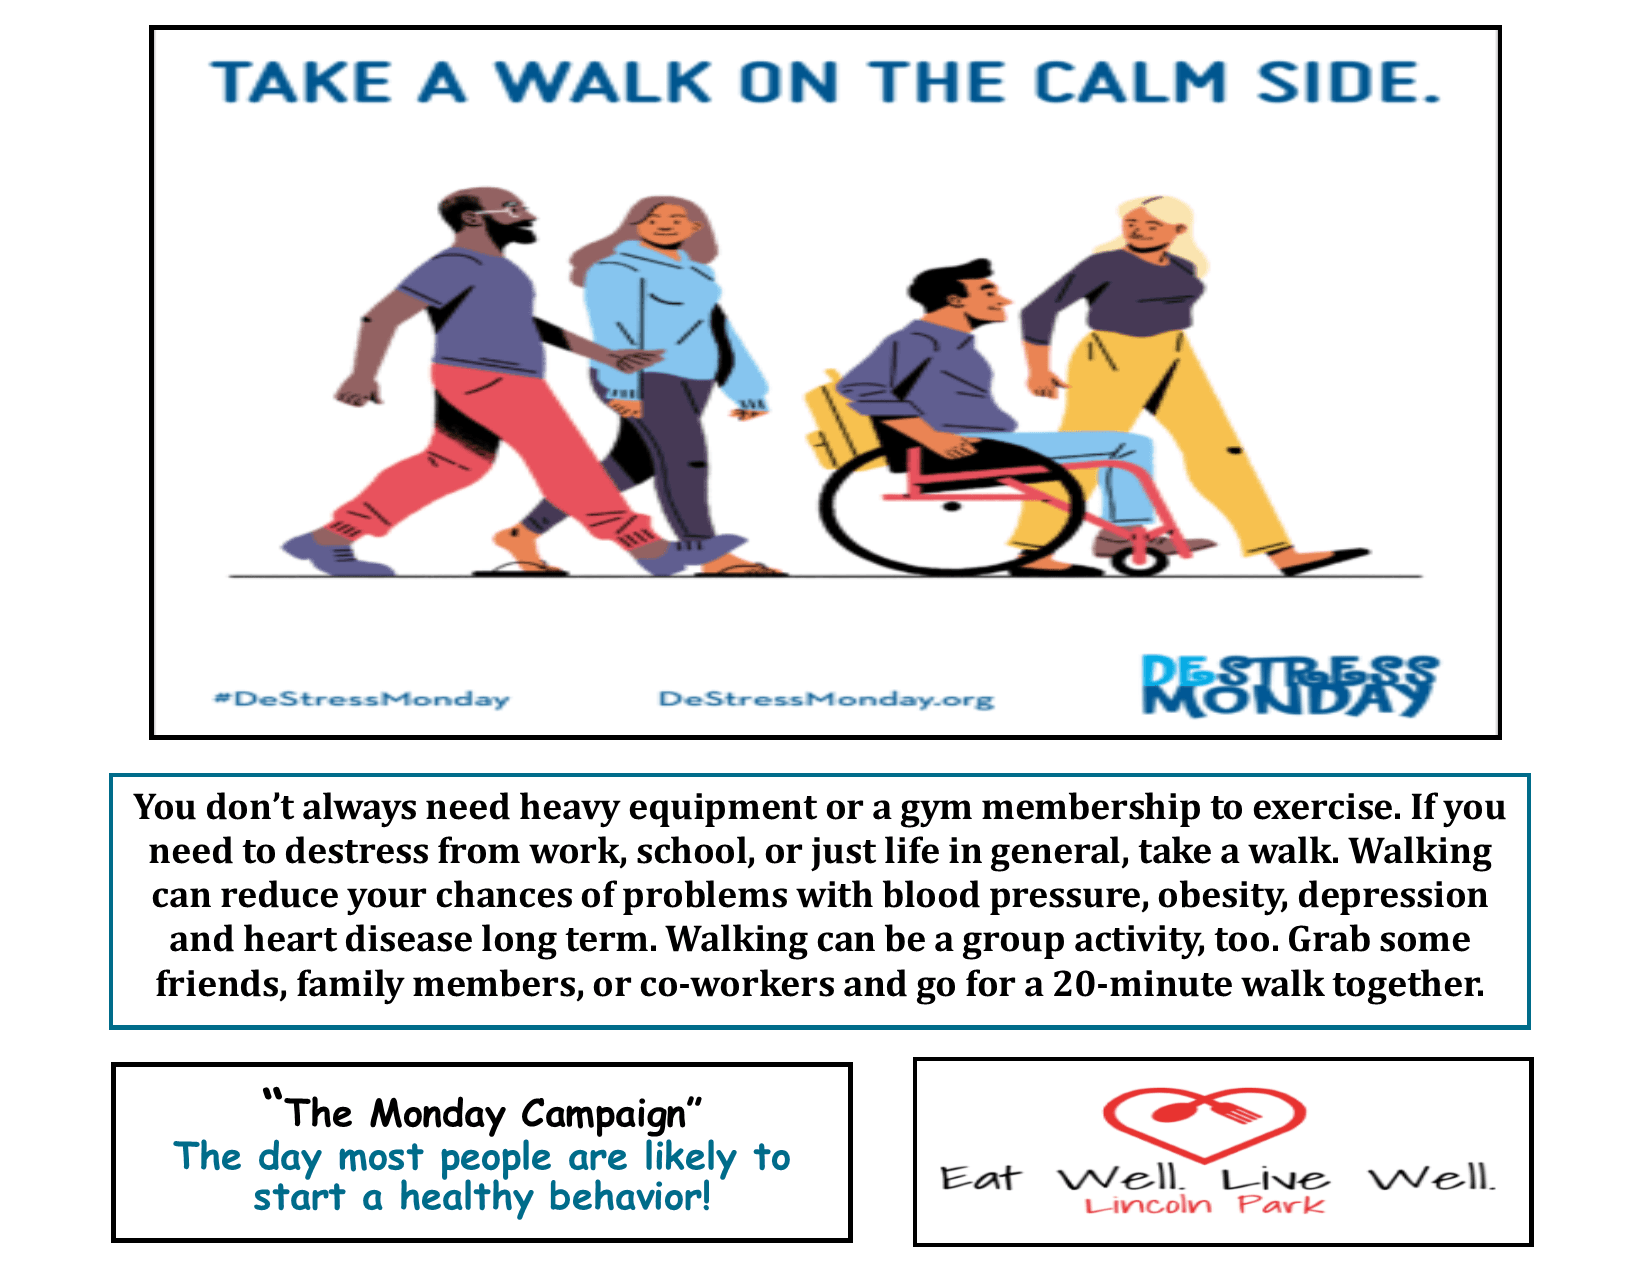 Healthy Monday 7-15-19 Walk on the Calm Side